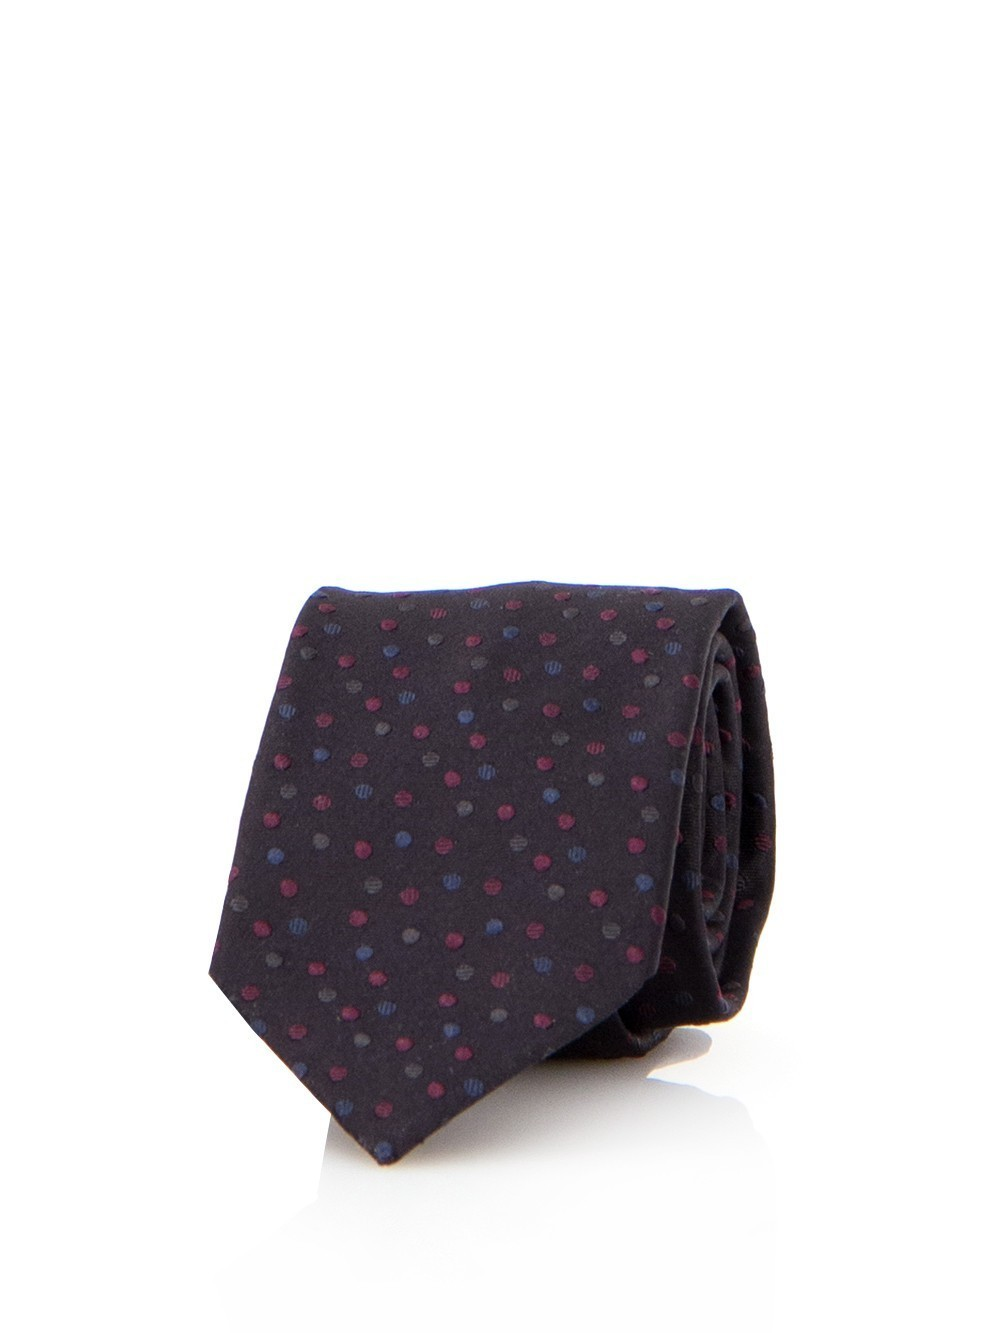 【Dolce & Gabbana】Dark brown tie with polka dots ネクタイ